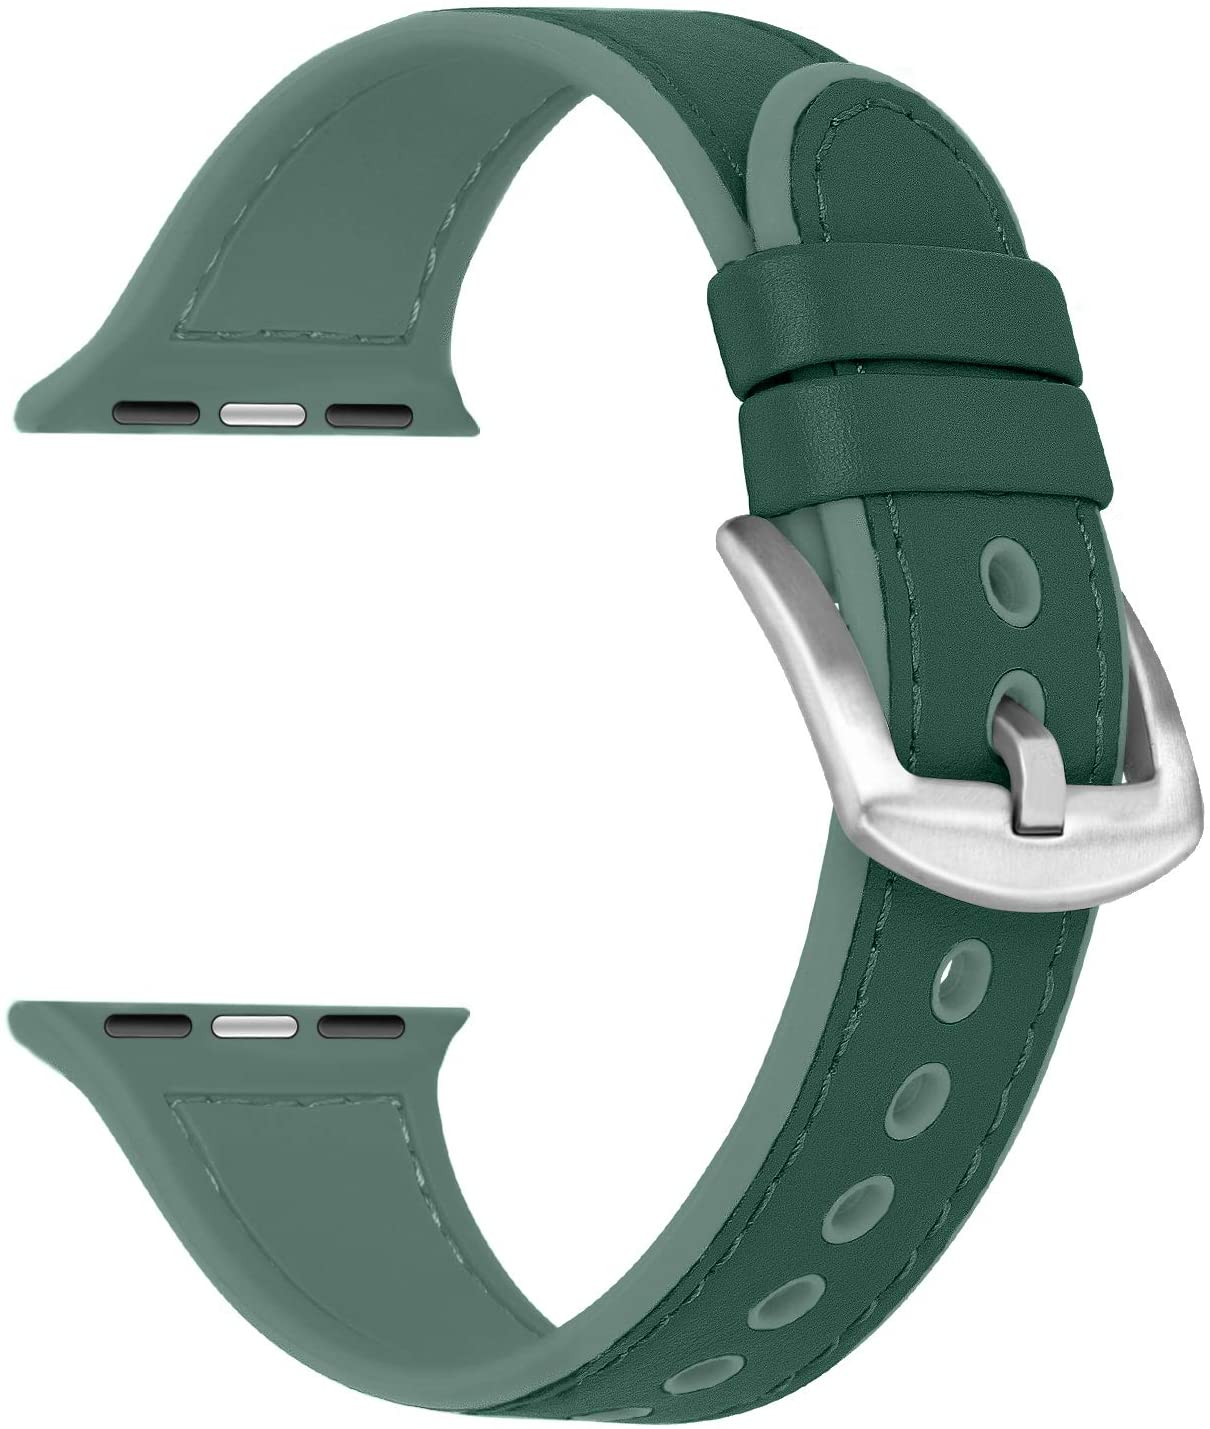 Misker Leather Band Compatible Withe Apple Watch 38mm 40mm 42mm 44mm, Genuine Leather withe Silicone Replacement Strap Buckle Compatible with iWatch Series 5/4/3/2/1 (Blackish green, 42mm/44mm)